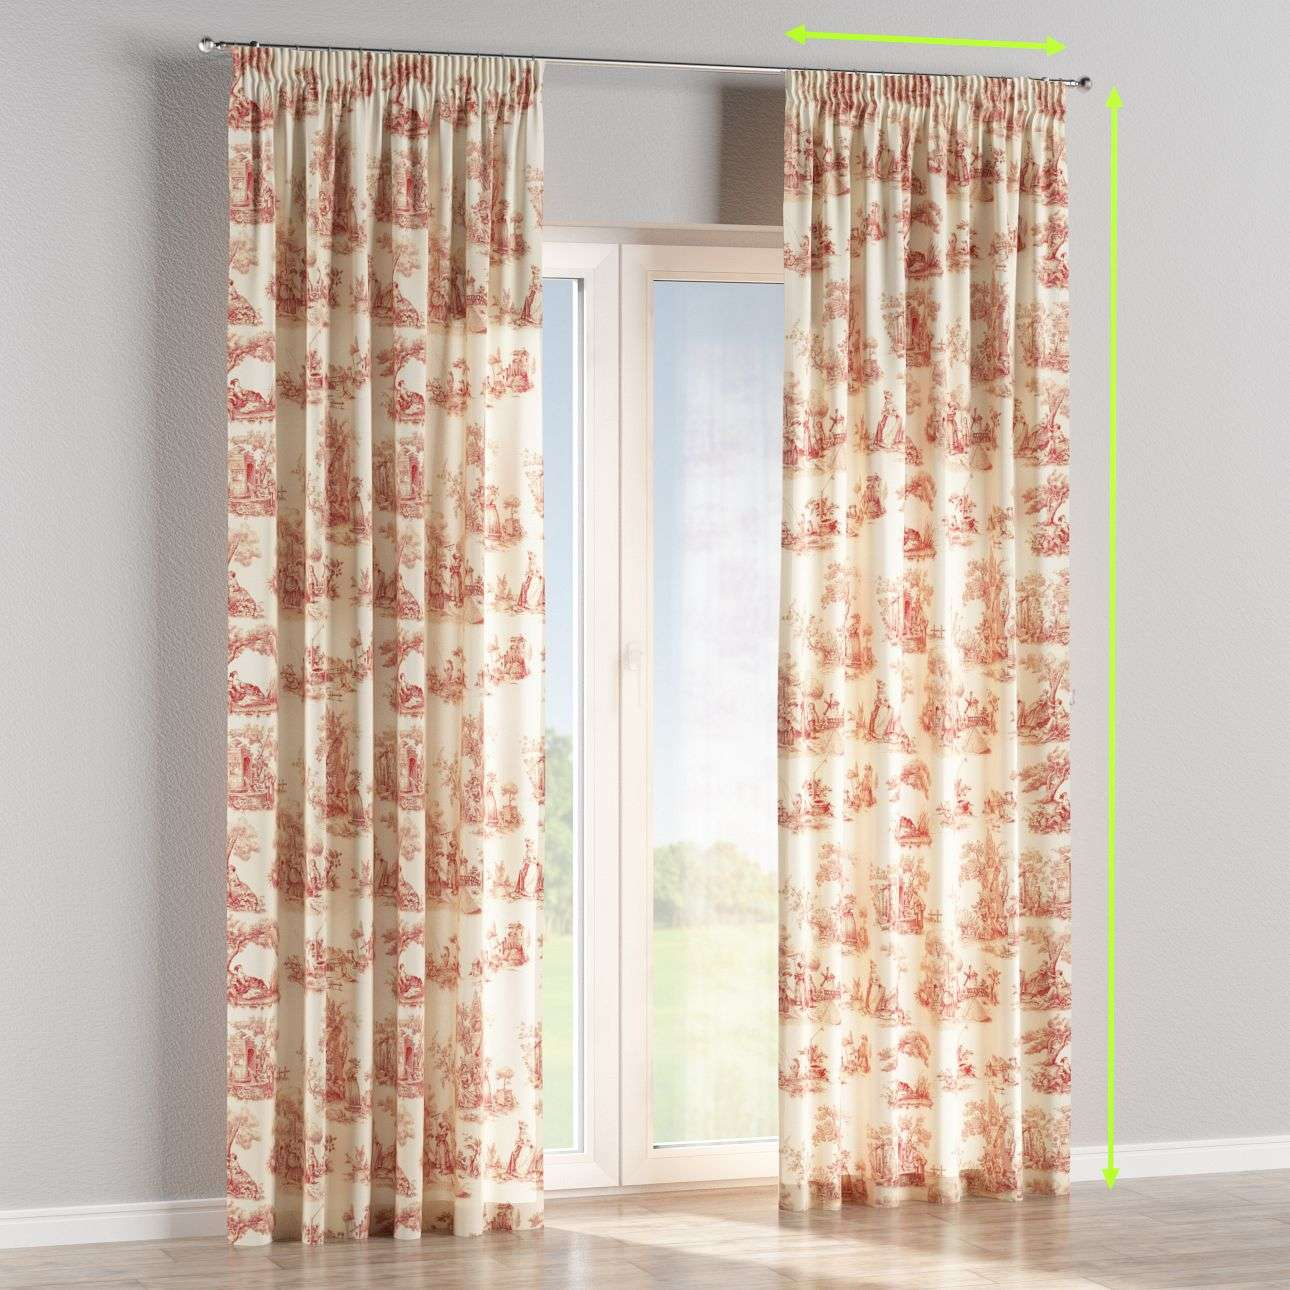 Pencil pleat lined curtains in collection Avinon, fabric: 132-15